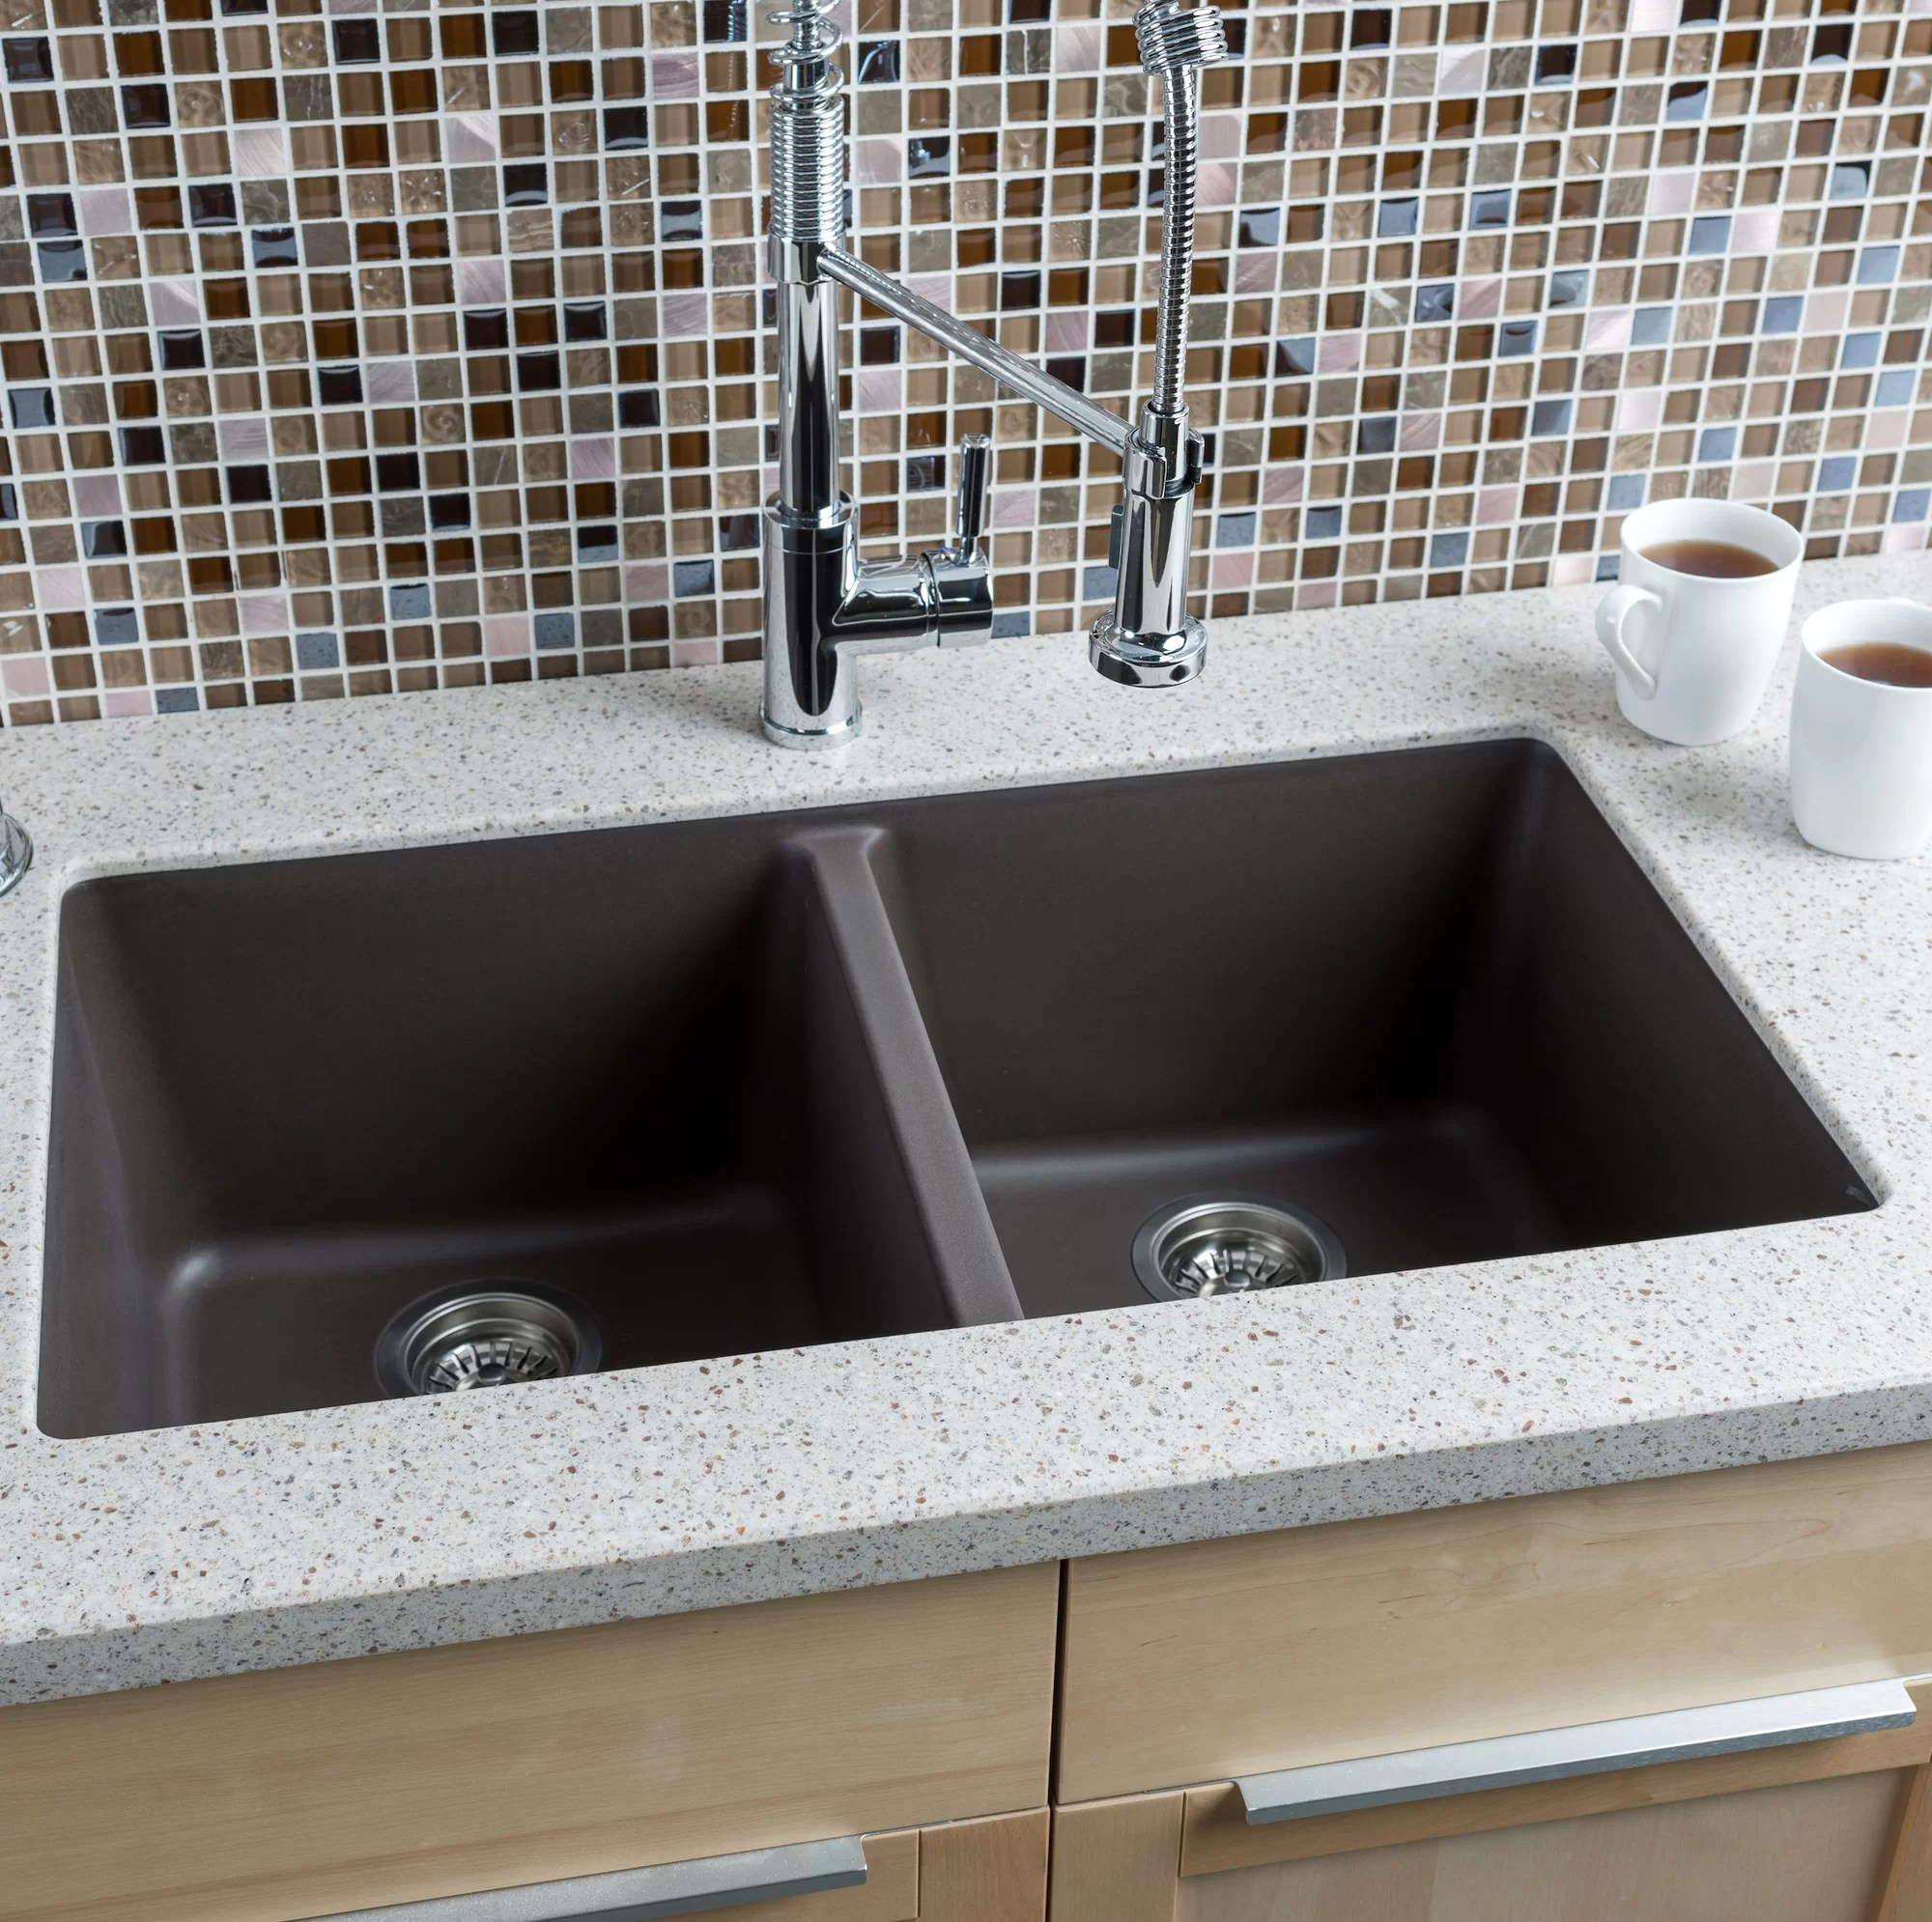 extra large kitchen sinks double bowl designs of small modular hahn 33 quot x 18 5 granite